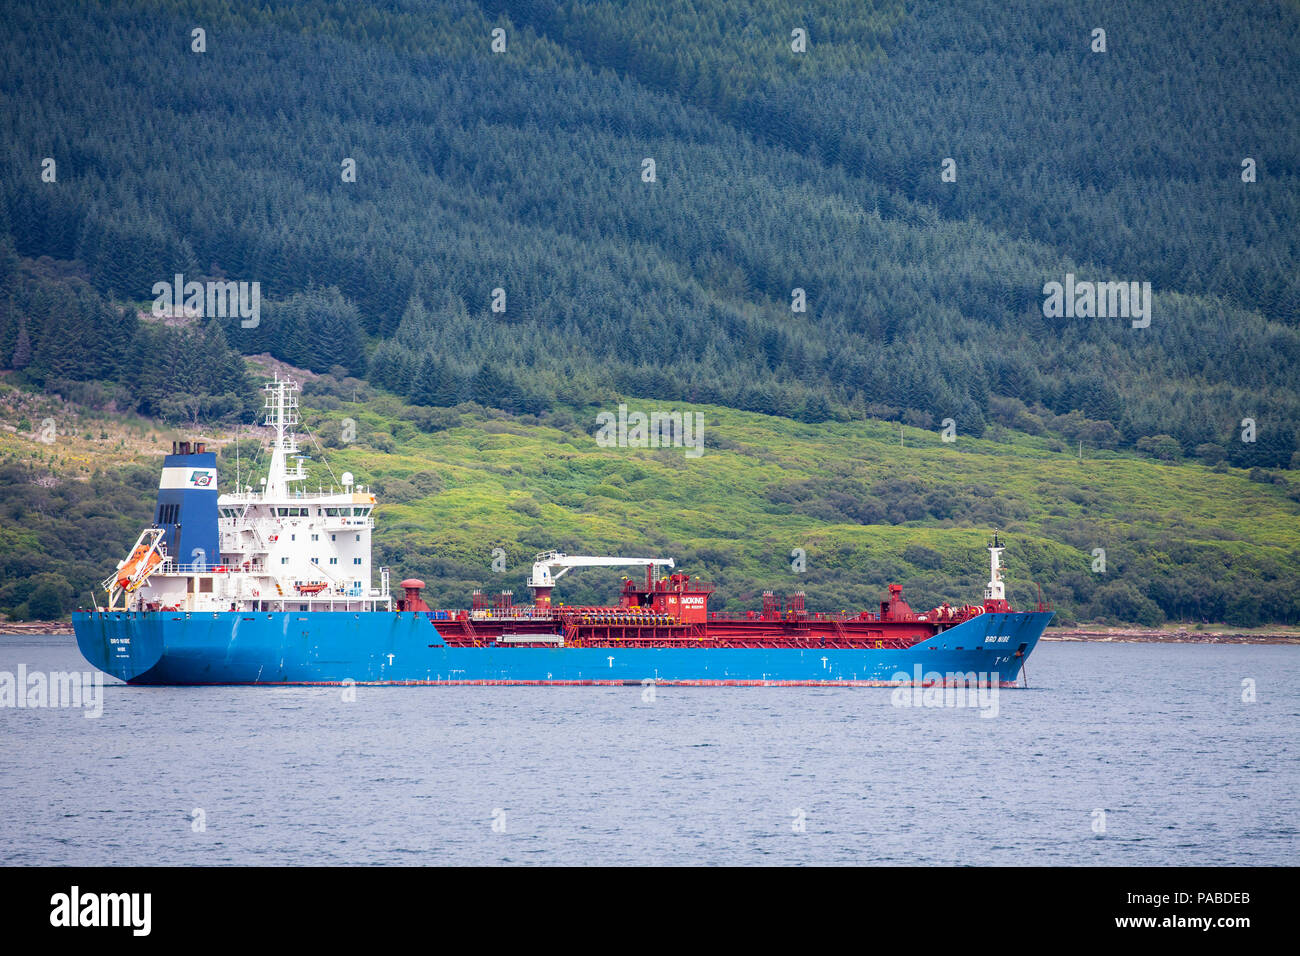 Danish oil and chemical tanker Bro Nibe (2007) operated by Broström AB, part of the Maersk Group, anchored off the Isle of Arran, Firth of Clyde - Stock Image